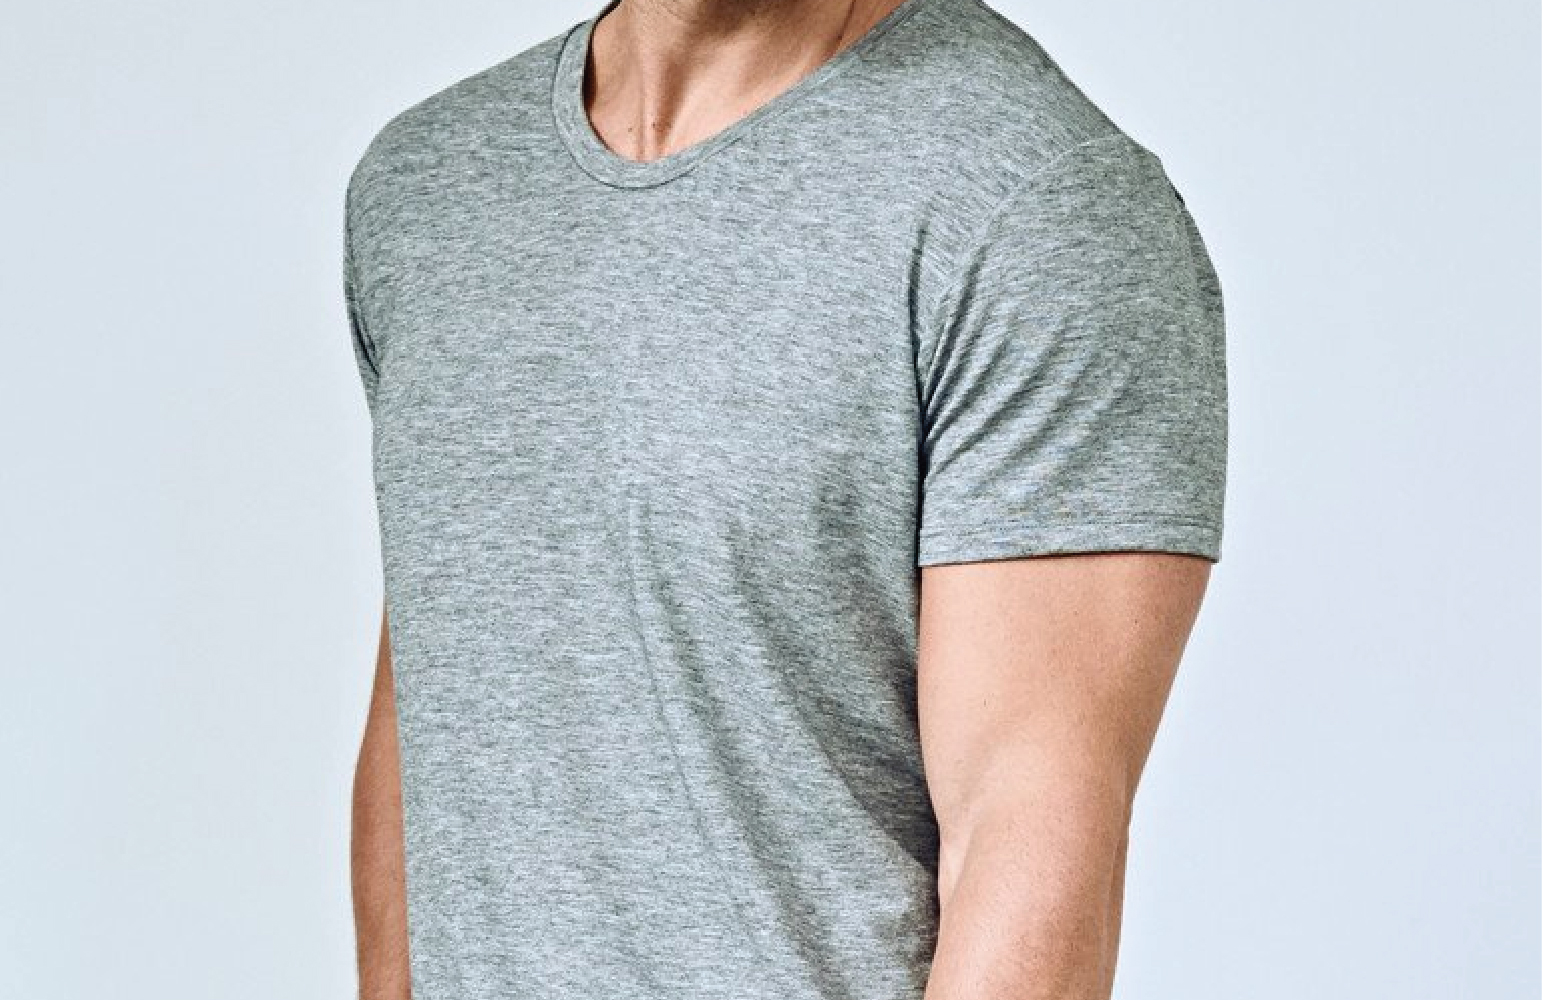 The Scoop Neck style T shirt